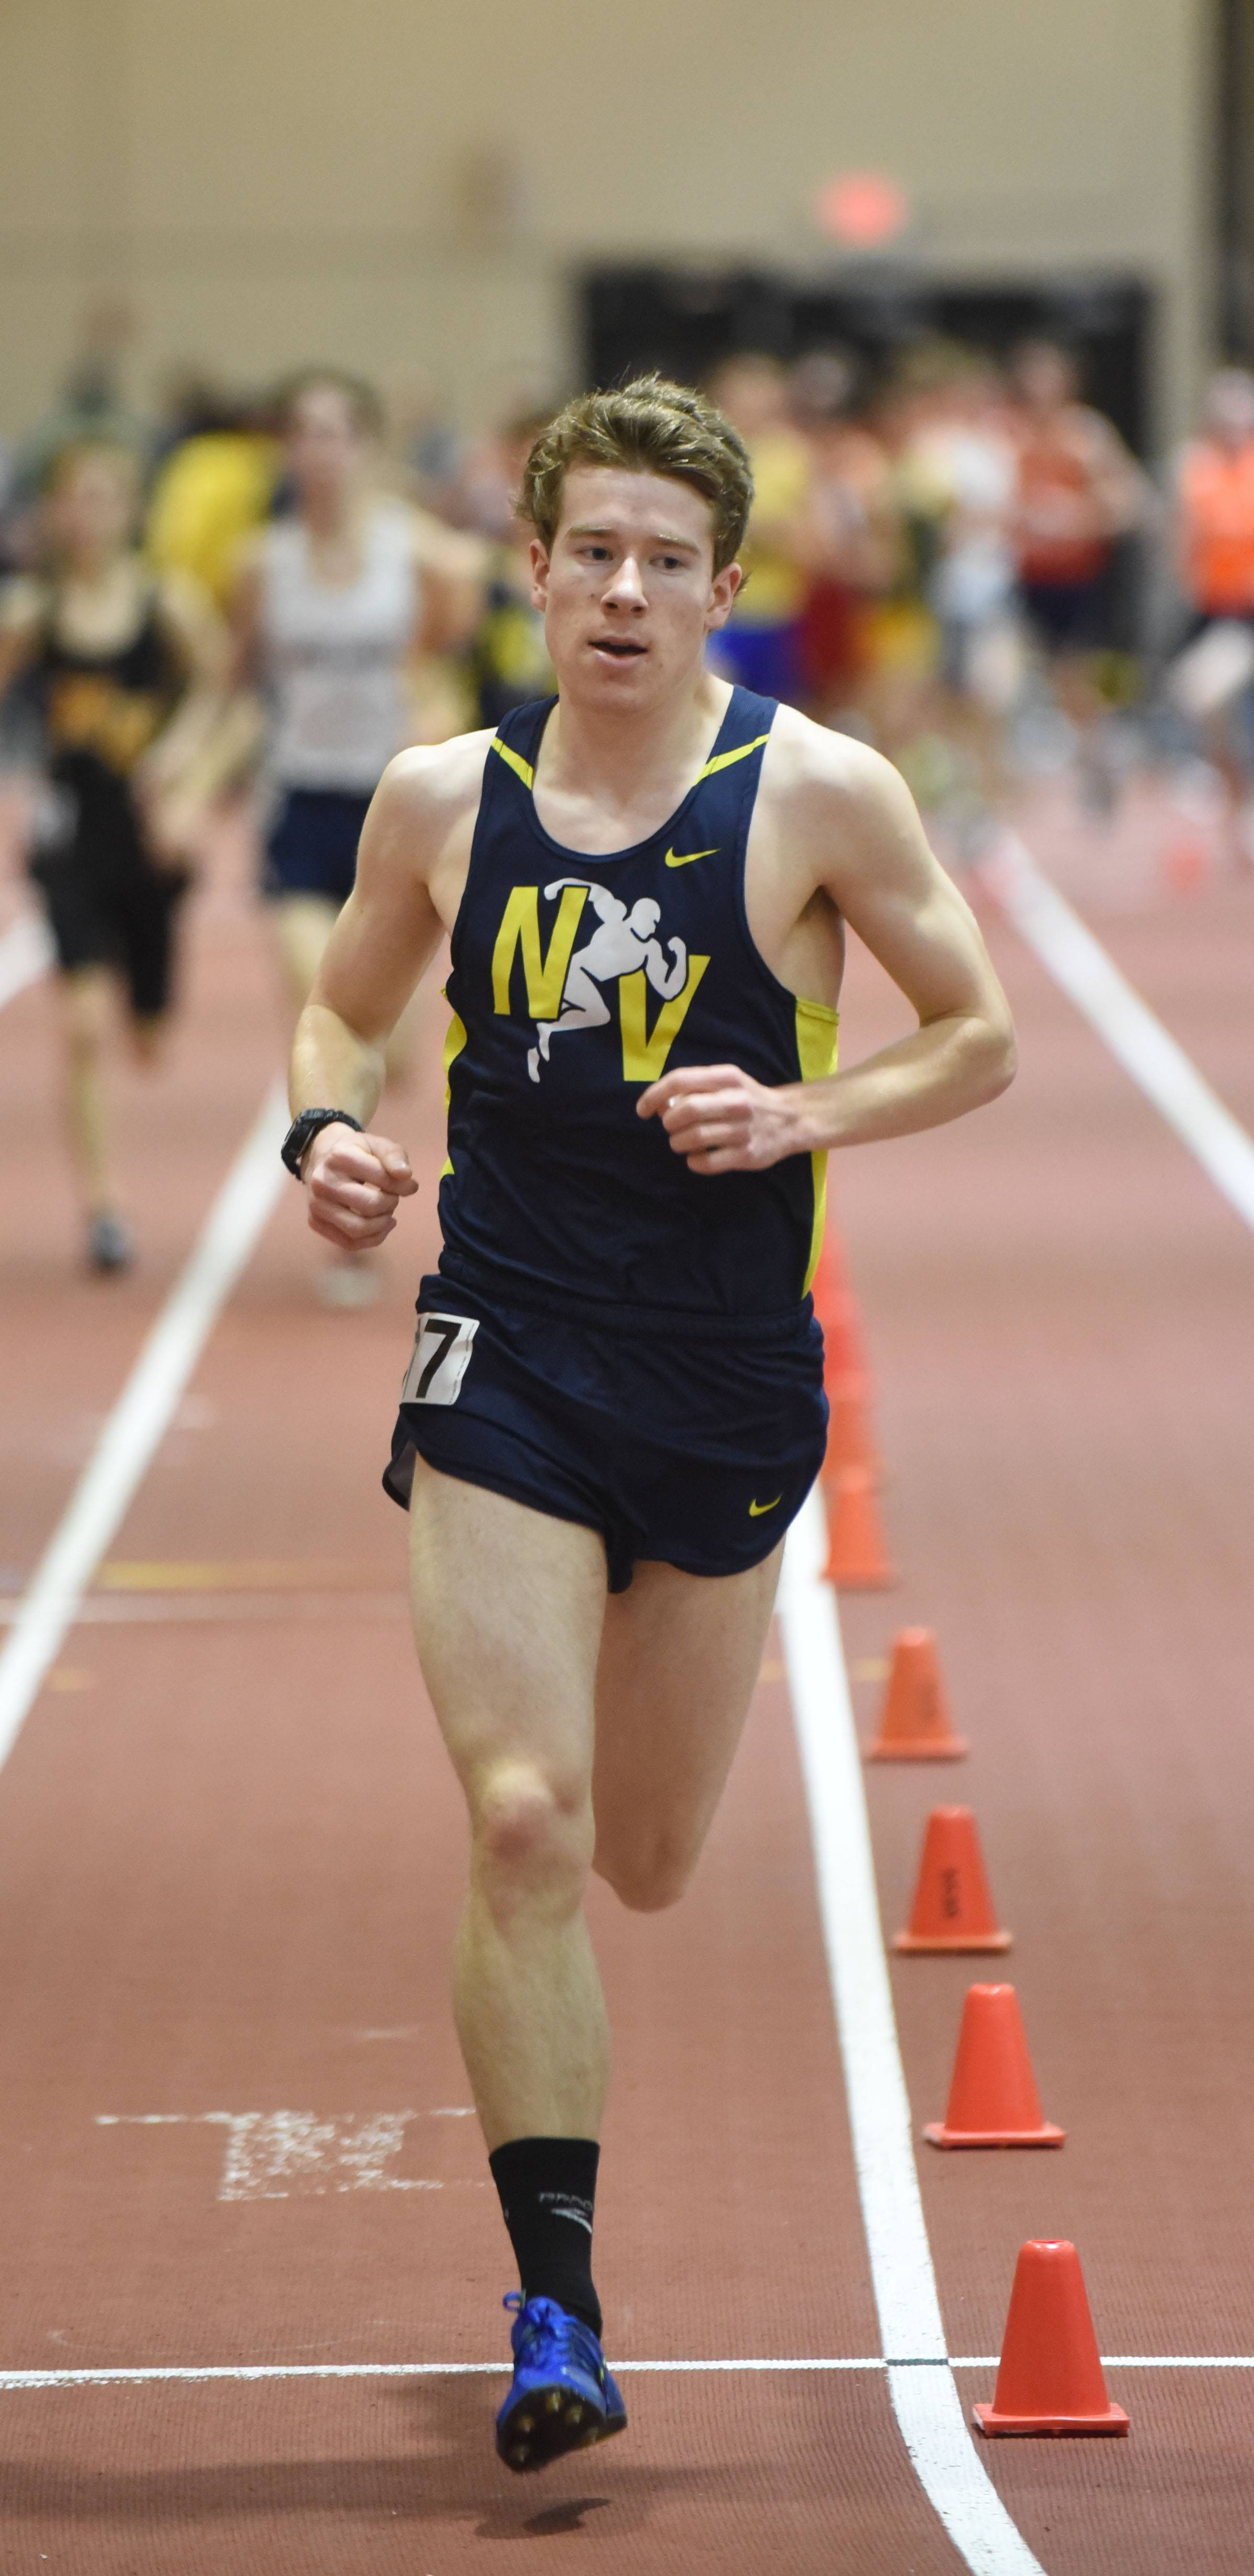 Connor Horn of Neuqua runs the 3200 during the DuPage Valley Conference boys indoor track meet Friday.